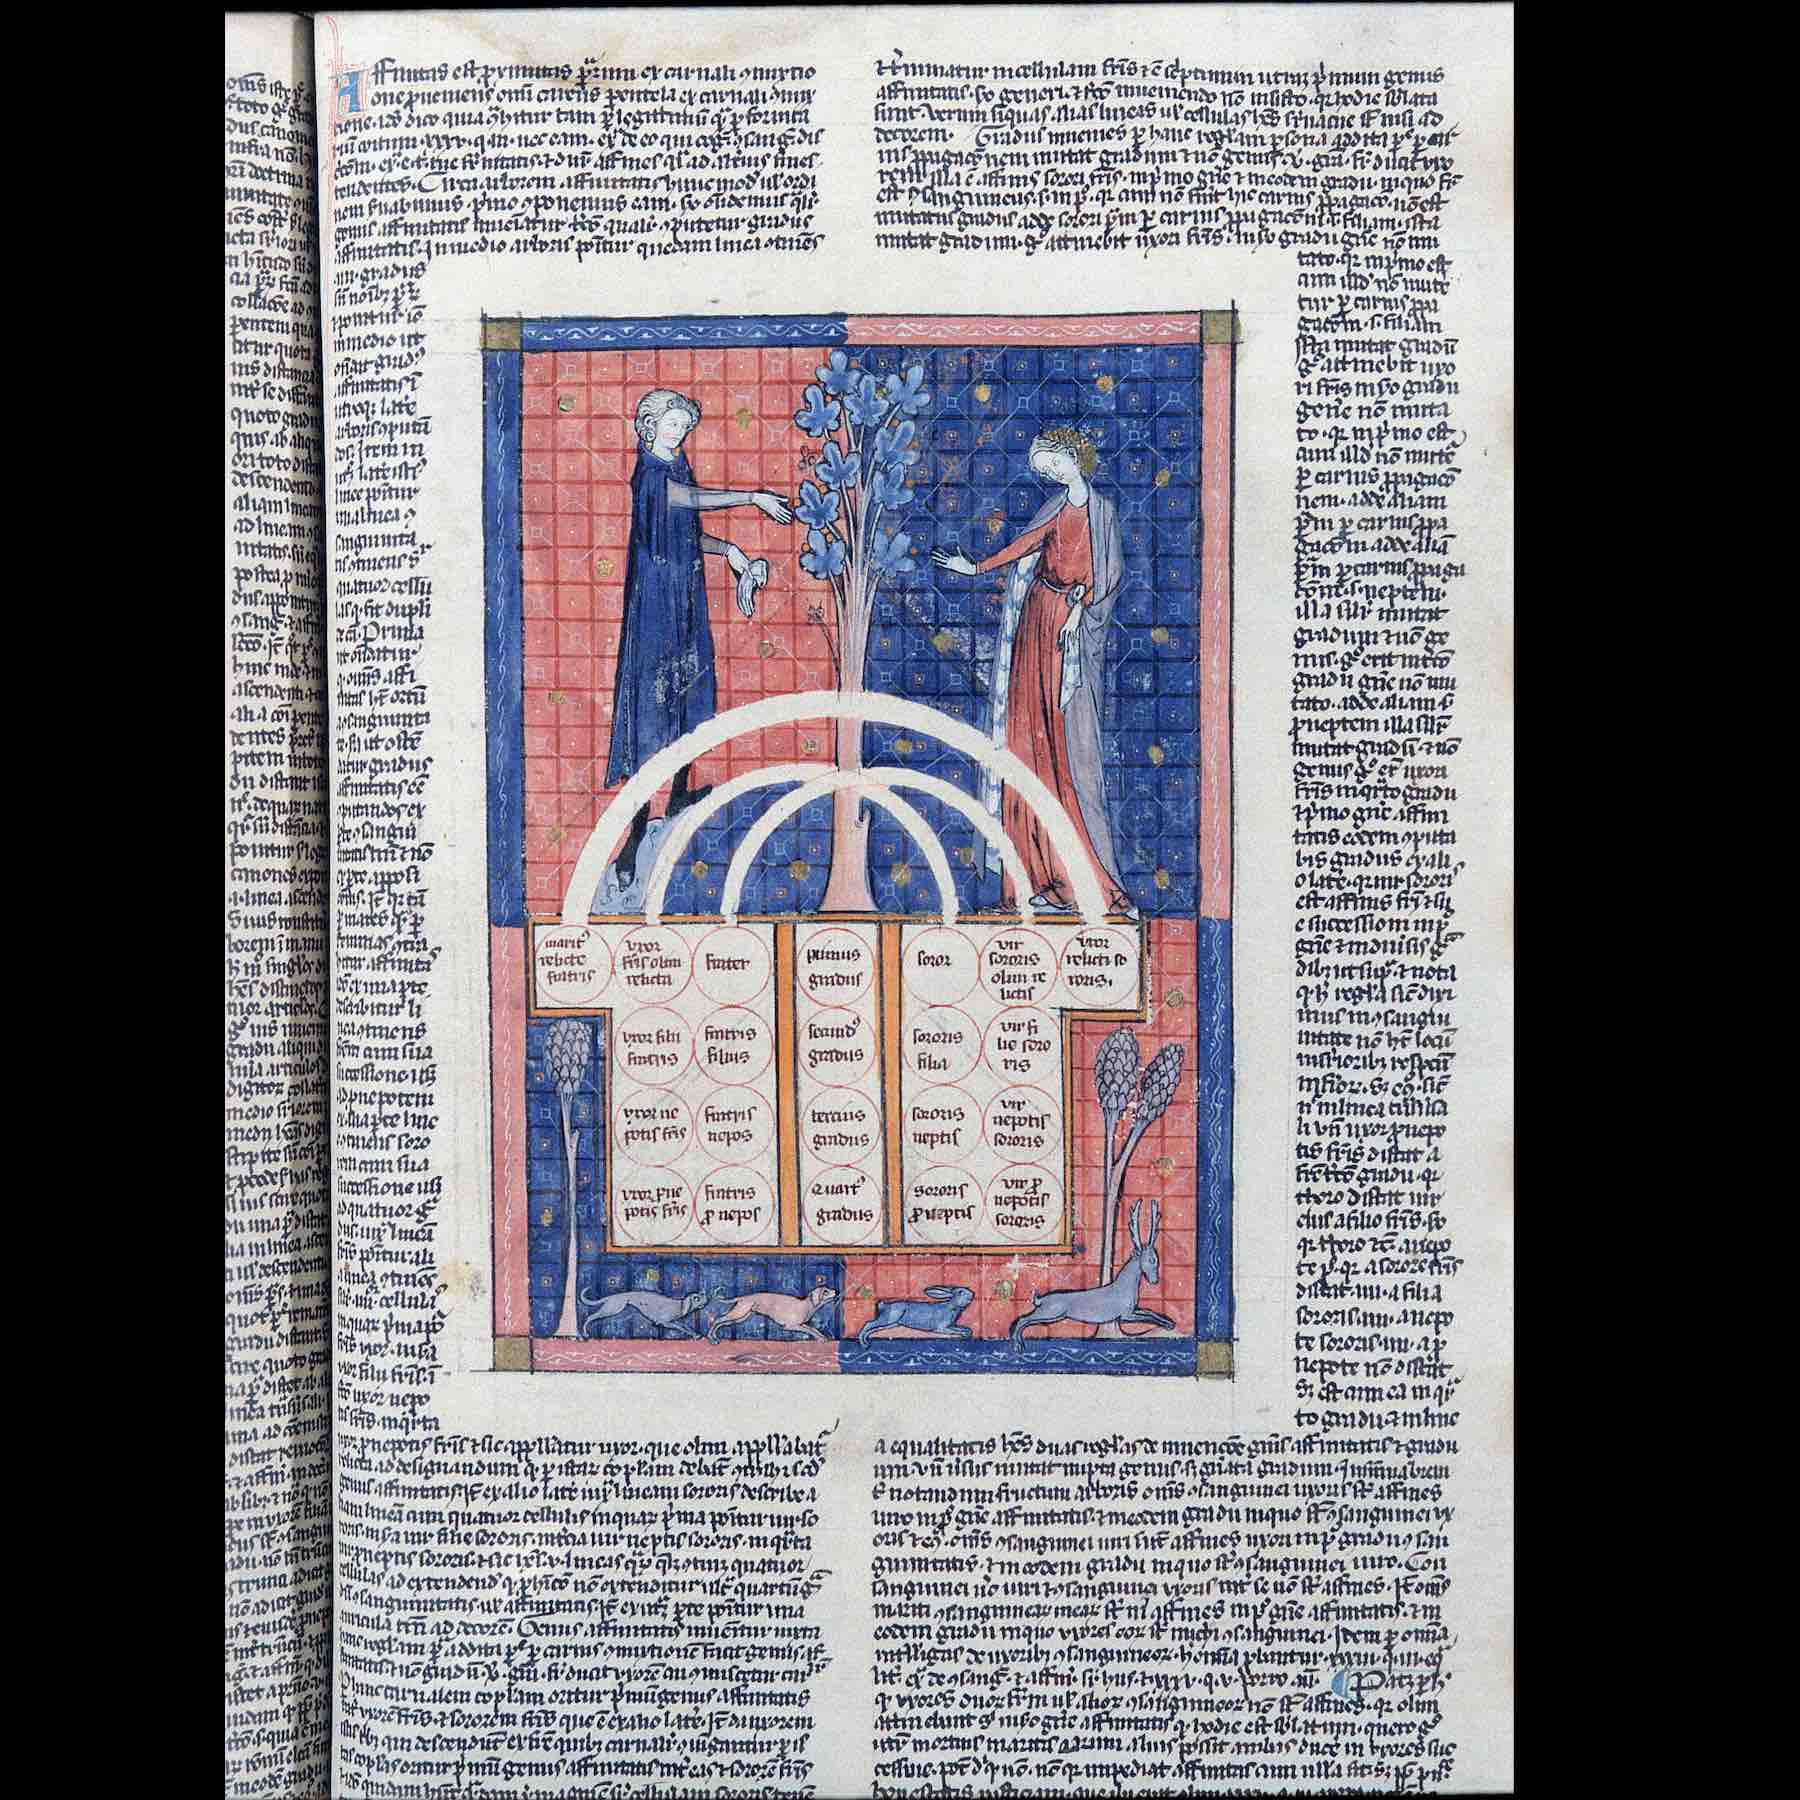 Tree of consanguinity from a 14th-c. copy of the Decretales, with gloss (Color microfilm of <a href='https://w3id.org/vhmml/readingRoom/view/80284'>England 305</a>/ Durham Cathedral Library, MS C.II.4)